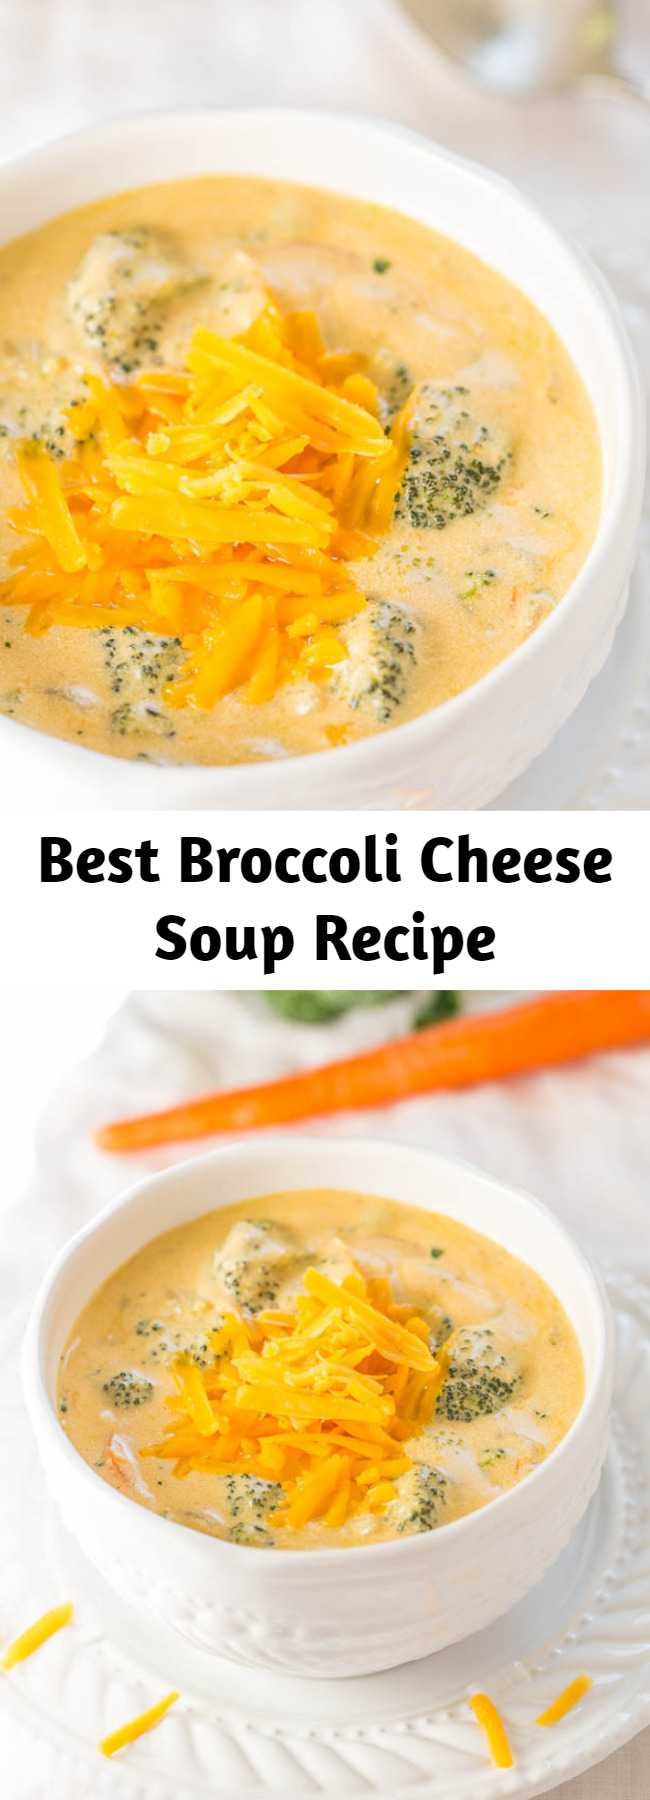 The Best Broccoli Cheese Soup Recipe (Better-Than-Panera Copycat. This is the best broccoli cheese soup. Not only that, it's some of the best soup I've ever tasted, period. If you like Panera's broccoli cheddar soup, this blows the pants off it. It's an easy soup to make and is ready in 1 hour. You'll be rewarded with the best, creamiest, richest, and most amazing soup.